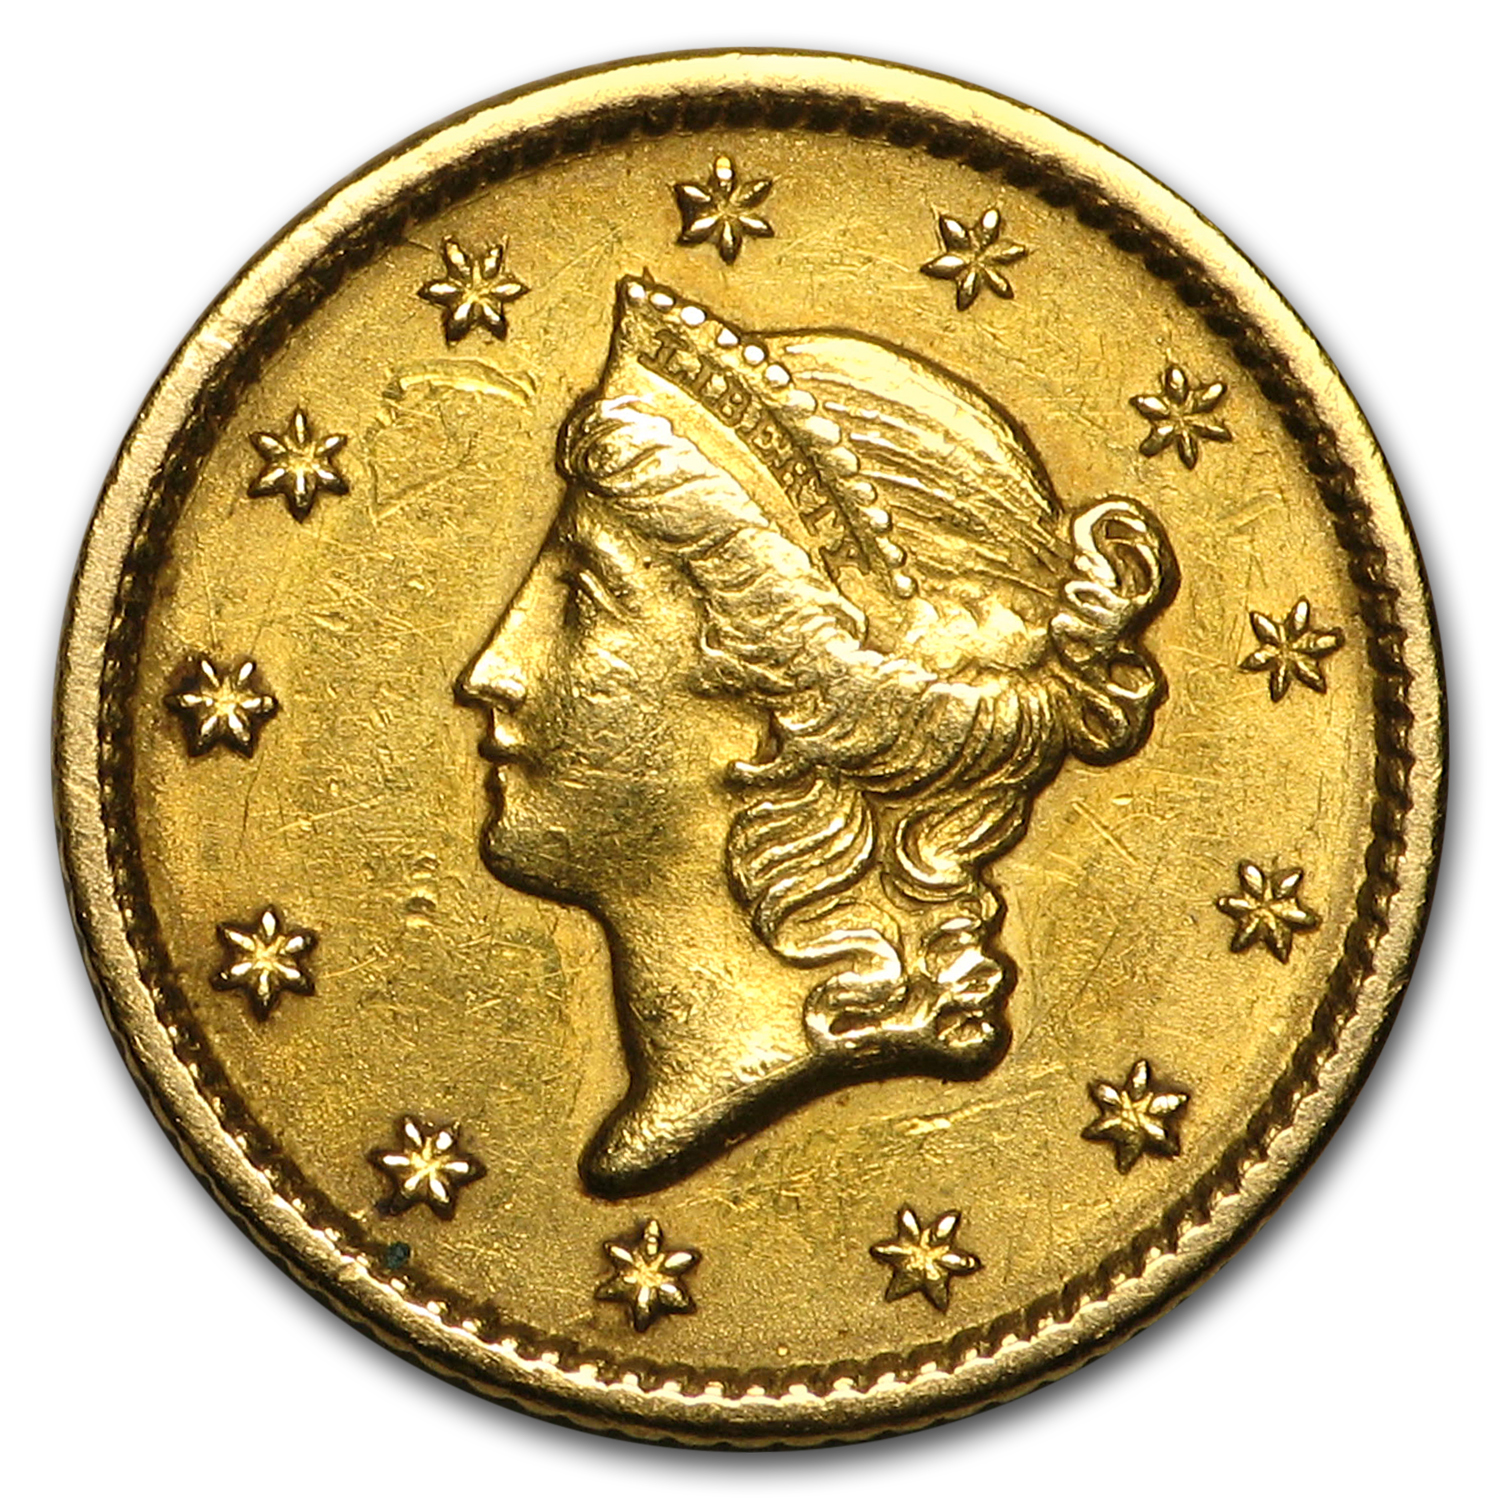 1849 $1 Liberty Head Gold Open Wreath Extra Fine